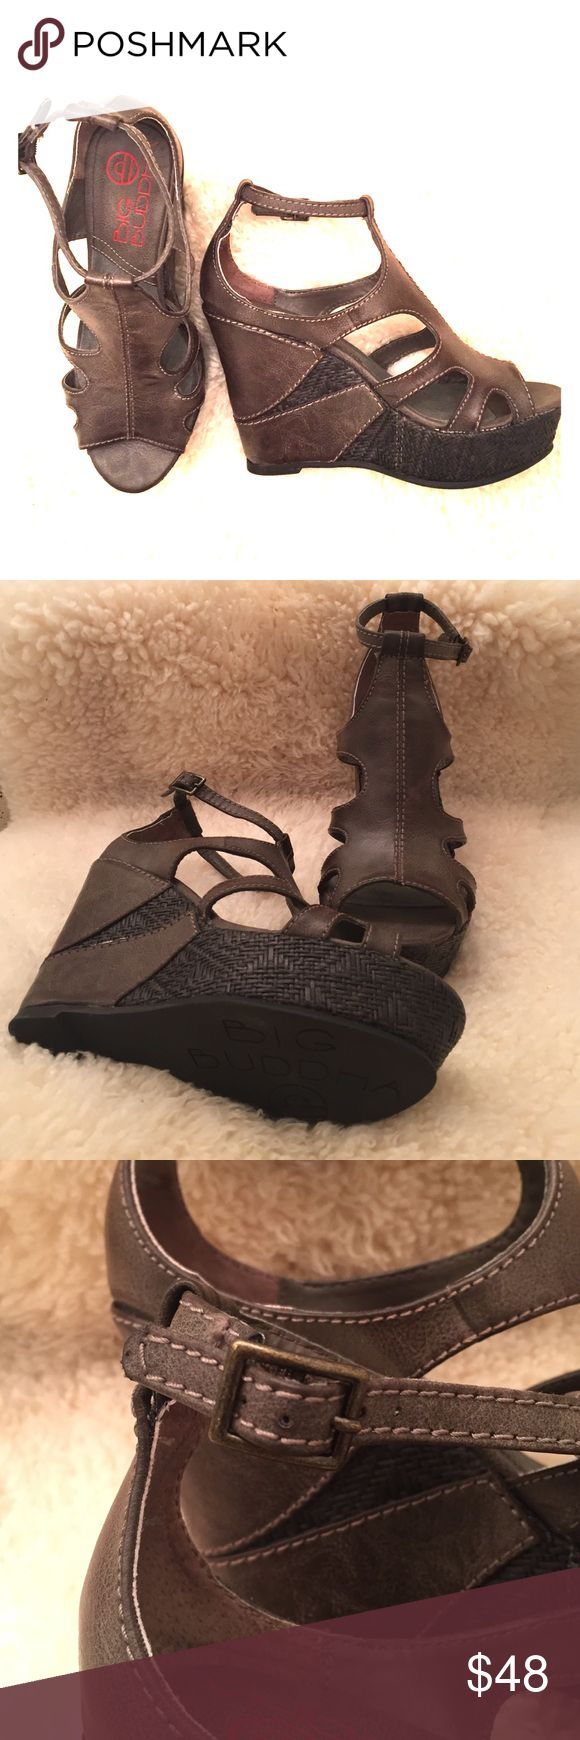 Big Buddha wedge sandals Very chic slate grey wedge heels by Bug Buddha. Faux-leather with a basket-weave detail, never worn outside the house so they're in perfect condition! Big Buddha Shoes Wedges